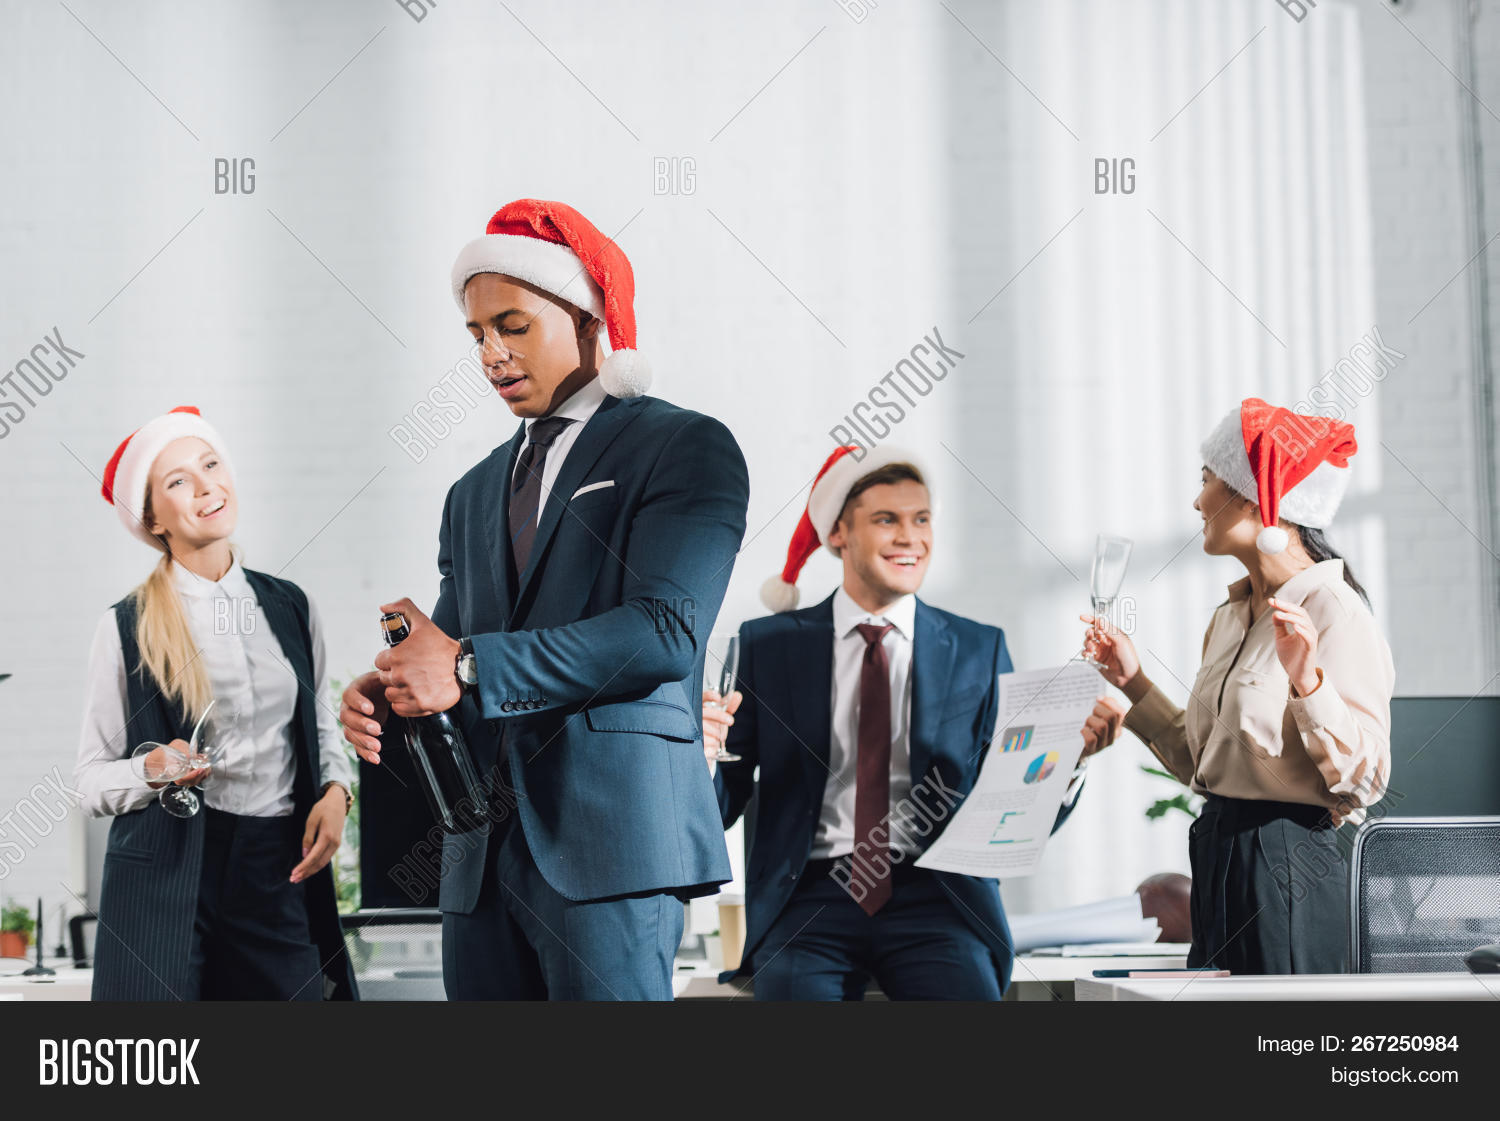 adult,african,alcohol,american,asian,attractive,beautiful,beverage,bottle,business,businessmen,businesswomen,caucasian,celebrate,christmas,colleagues,coworkers,drink,event,female,formal,glasses,handsome,happy,holding,holiday,indoors,male,men,multiethnic,multiracial,new,occupation,office,opening,party,people,profession,professional,santa,together,wear,wine,women,work,workplace,workspace,xmas,year,young